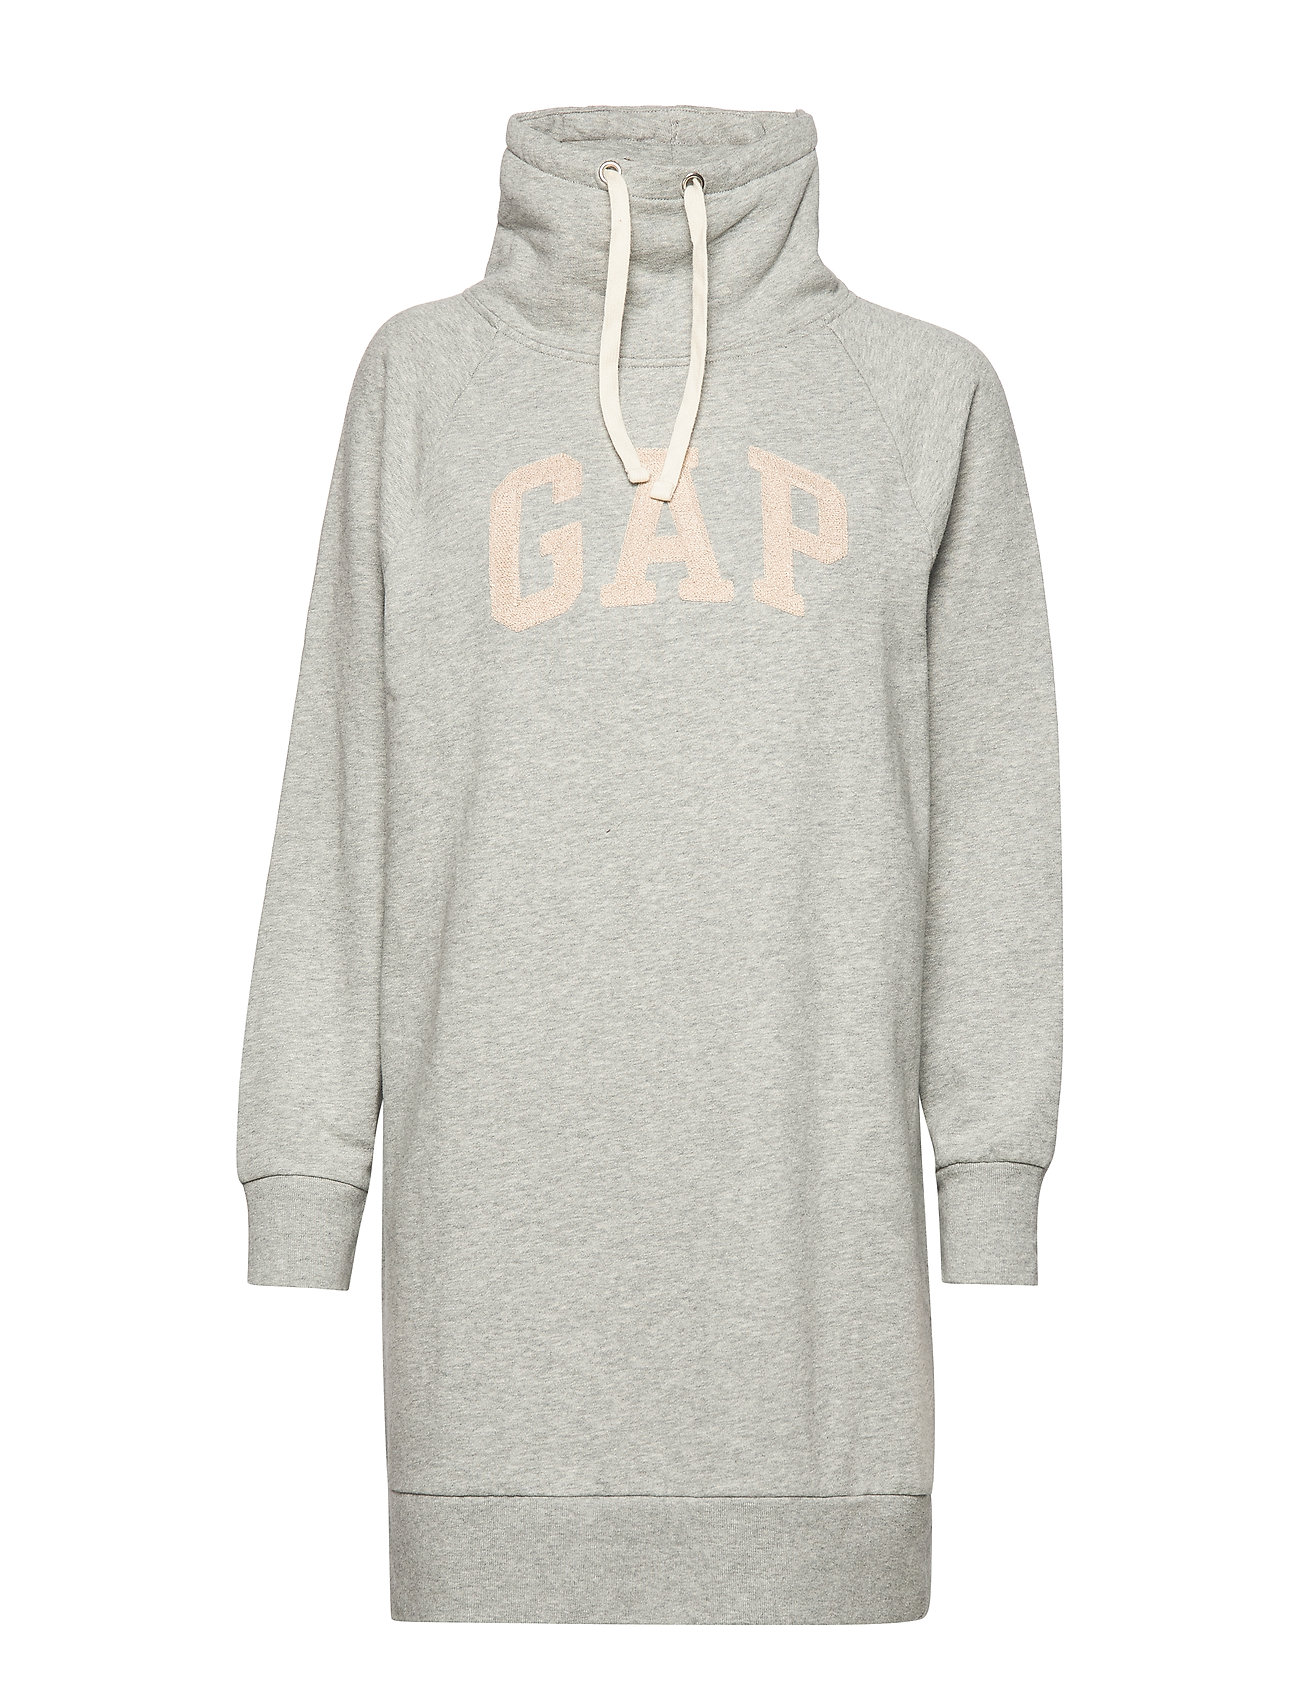 GAP GAP LUREX EMB FNL DRESS - B10 GREY HEATHER